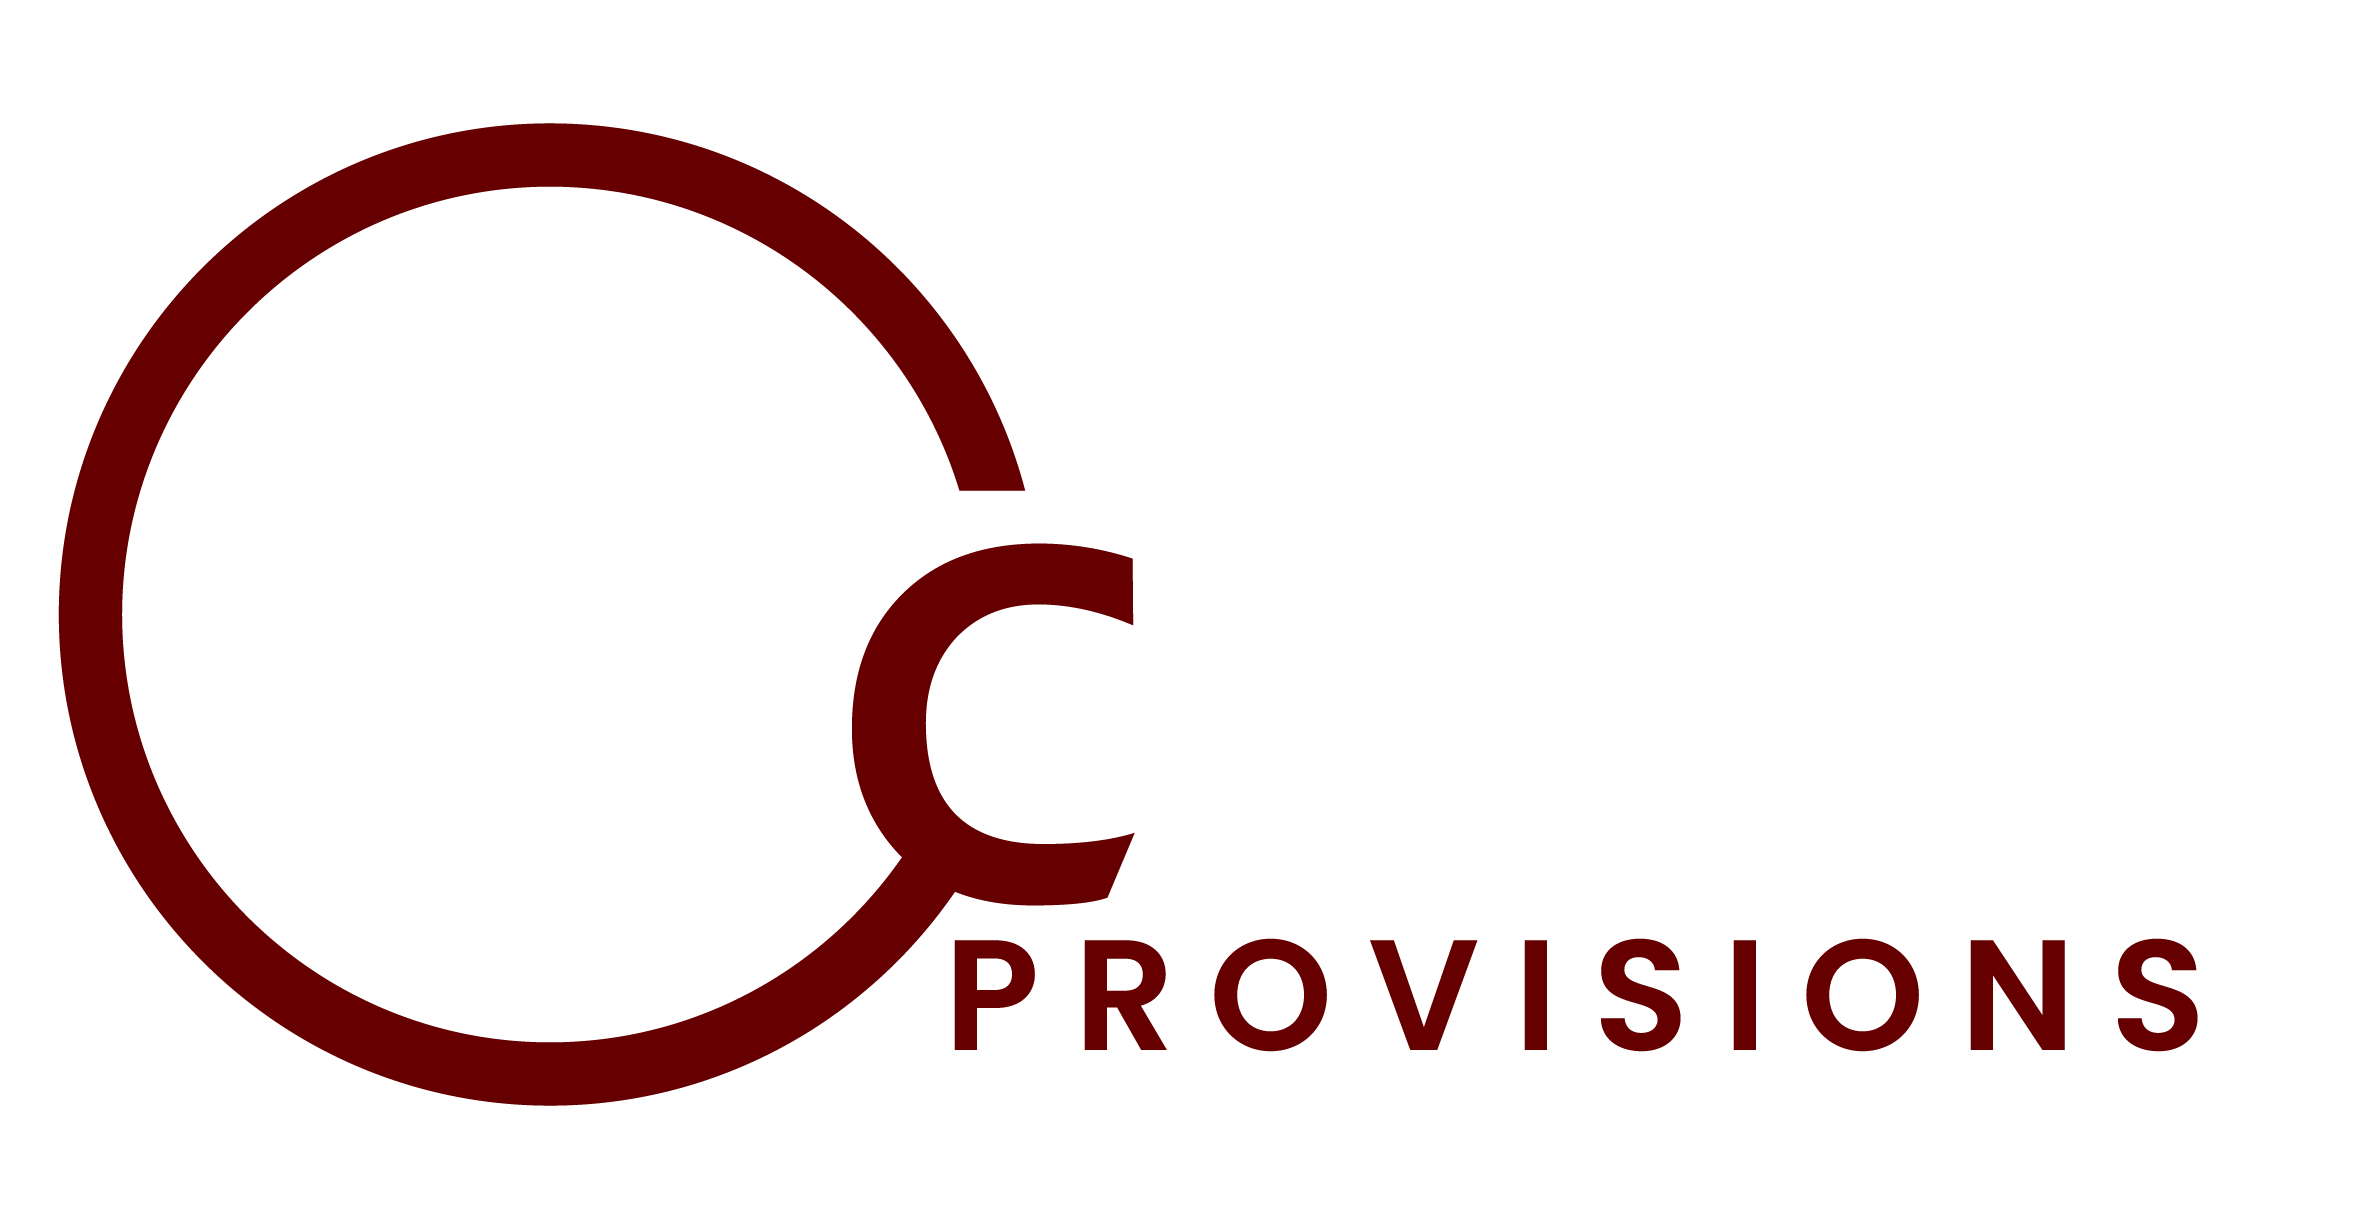 Lucidity Provisions